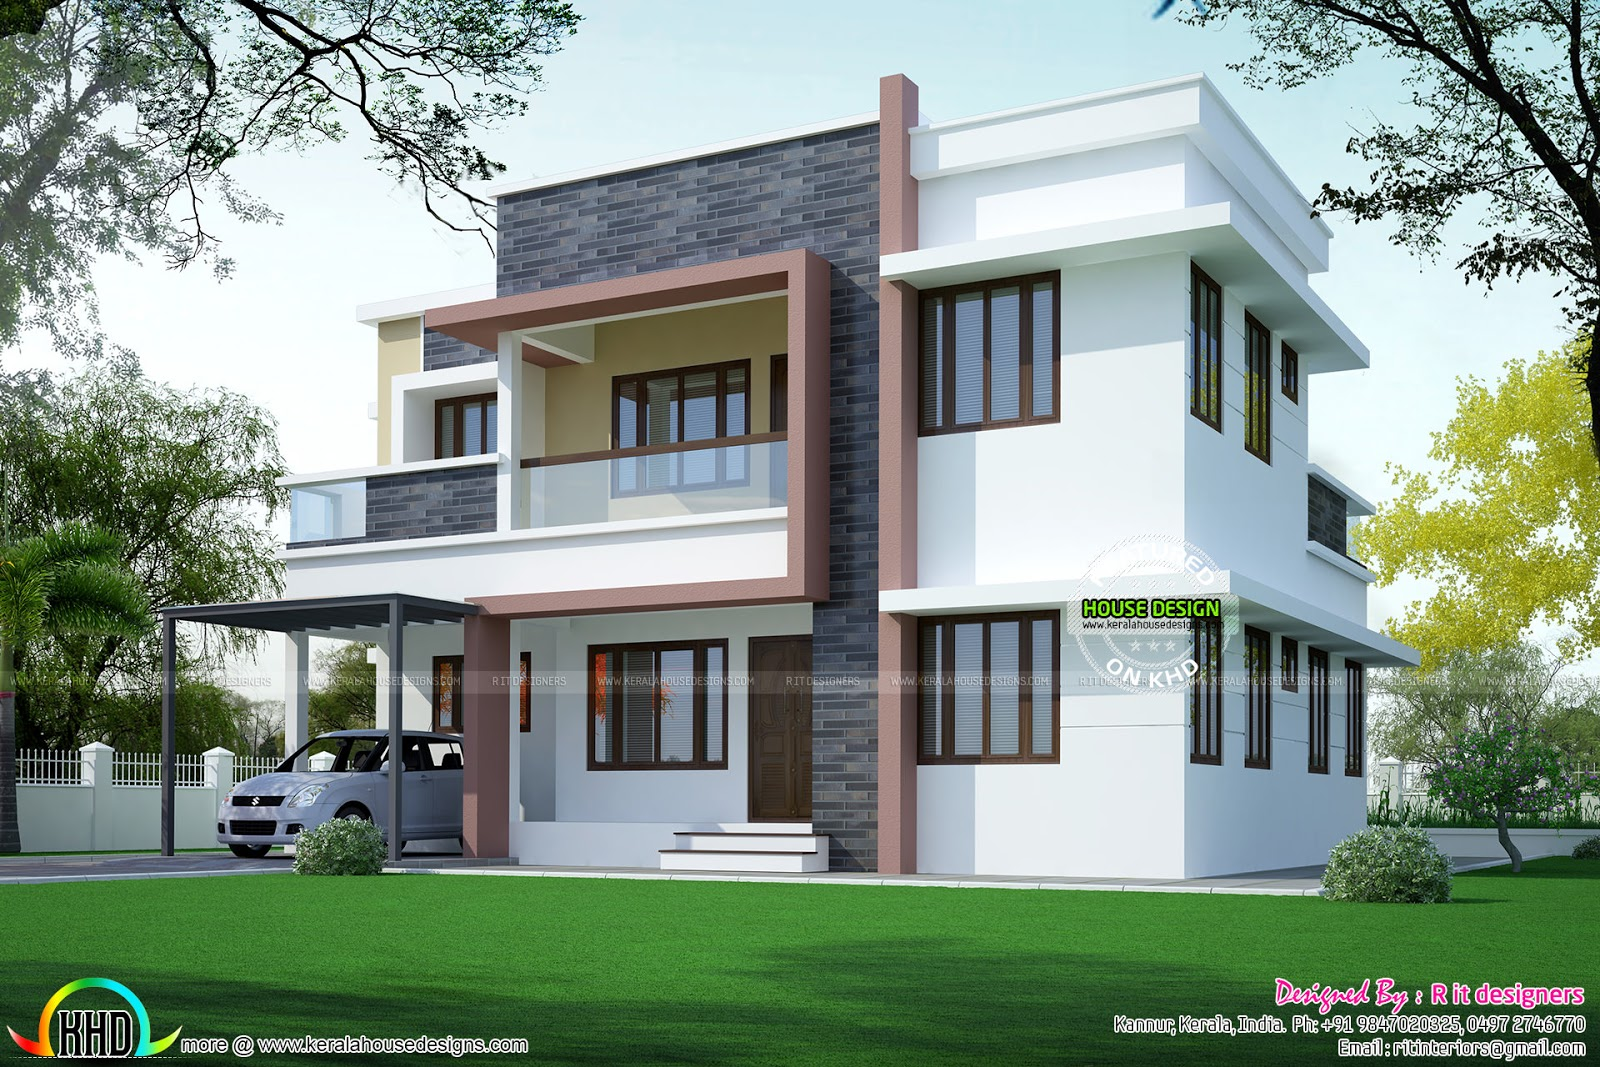 Simple home plan in modern style kerala home design and for Simple home plans and designs